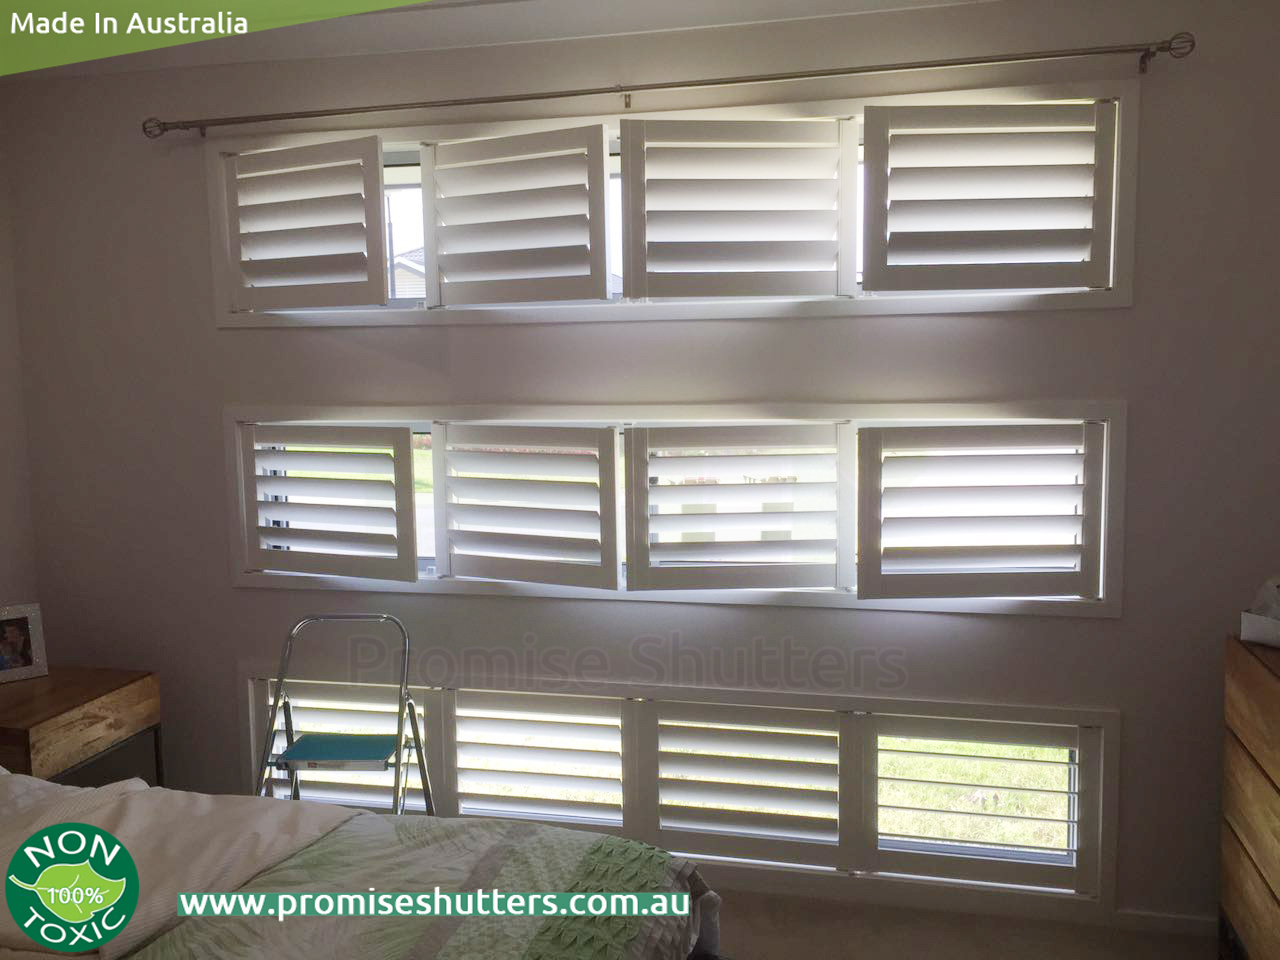 4 Panels Of White Vinyl Shutters For The Wide Small Windows